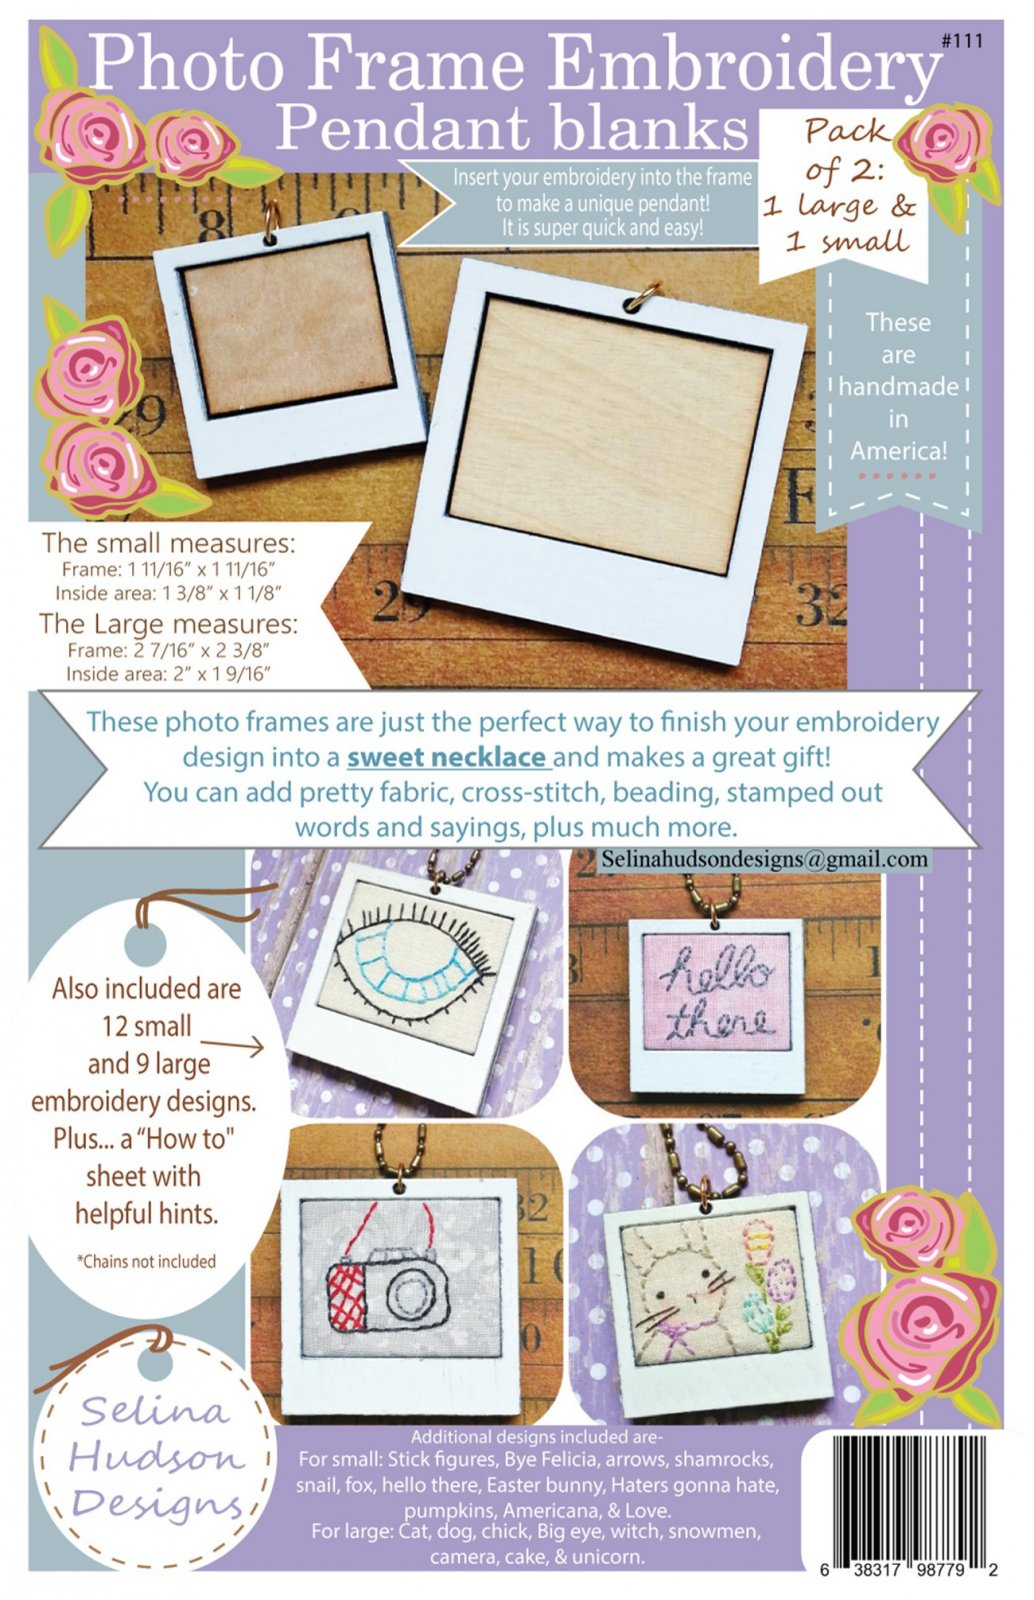 Photo Frame Embroidery Pendant Blanks